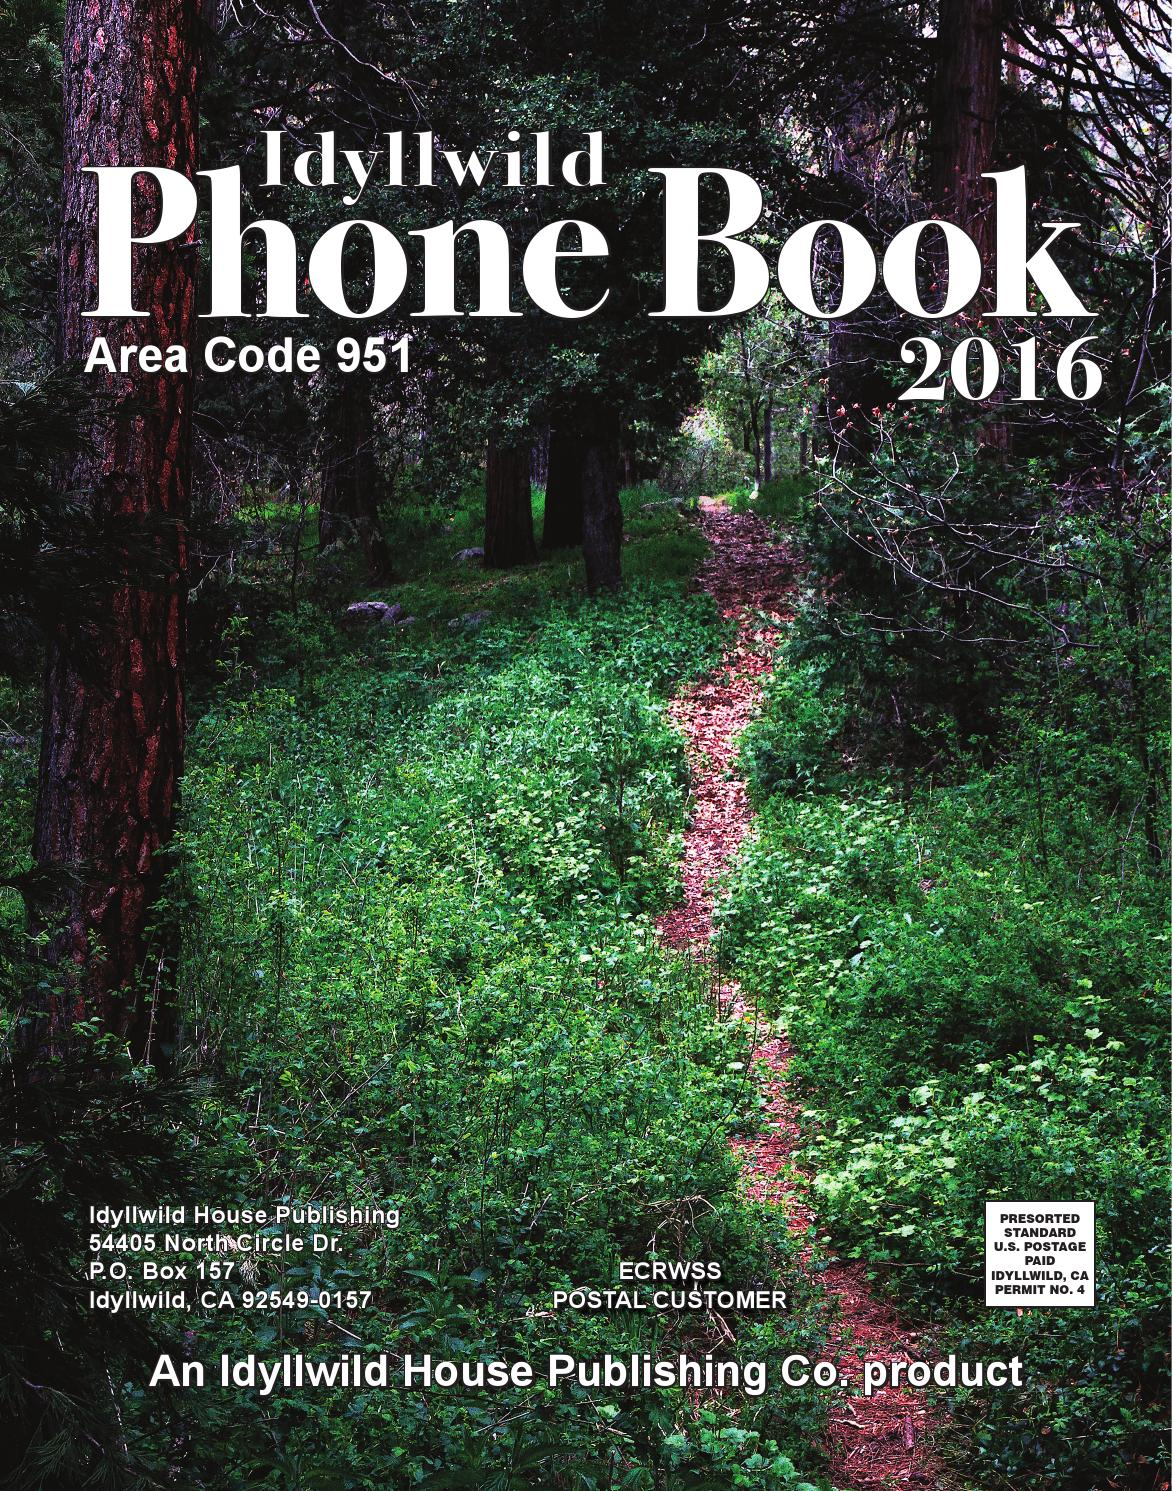 2016 Idyllwild Phone Book by Idyllwild Town Crier - issuu